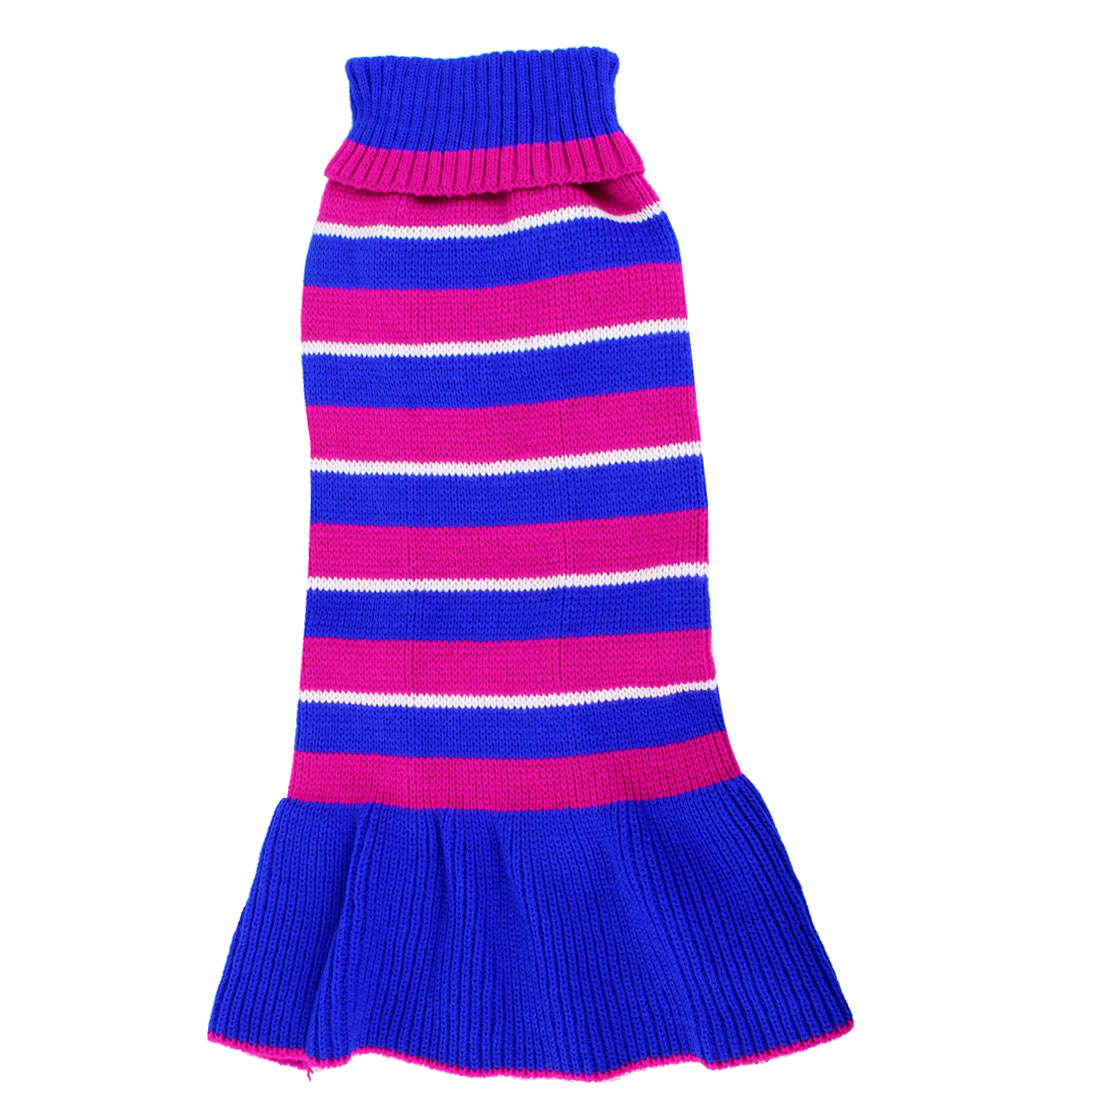 Pet Dog Yorkie Fuchsia Blue Stripe Printed Ribbed Cuff Knitwear Turtleneck Dress Apparel Sweater Size M